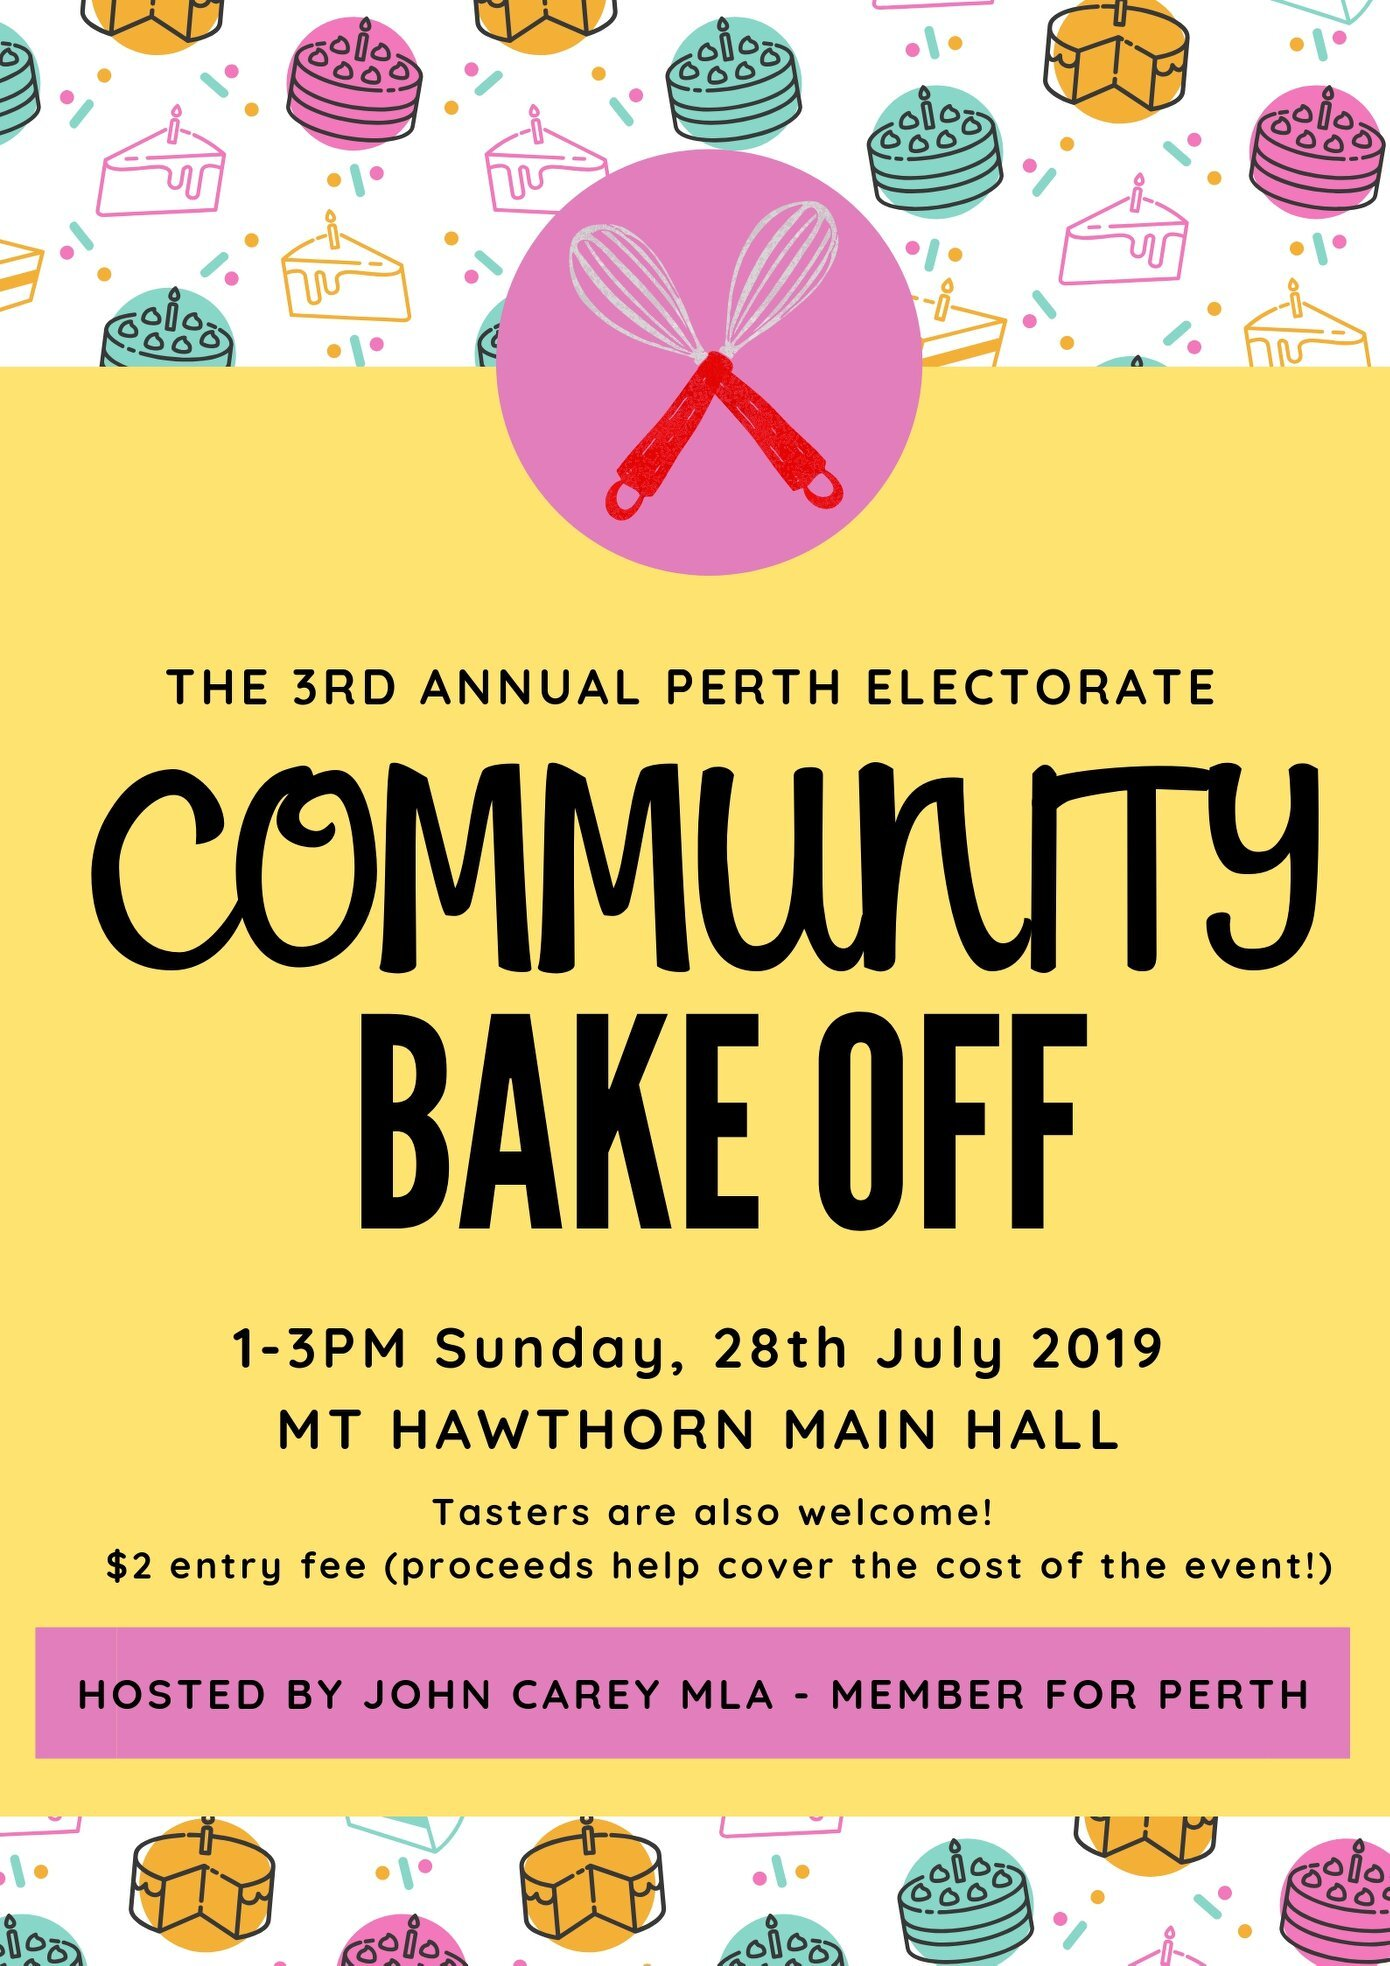 Perth Electorate - Community Bake Off 2019 - This Event is